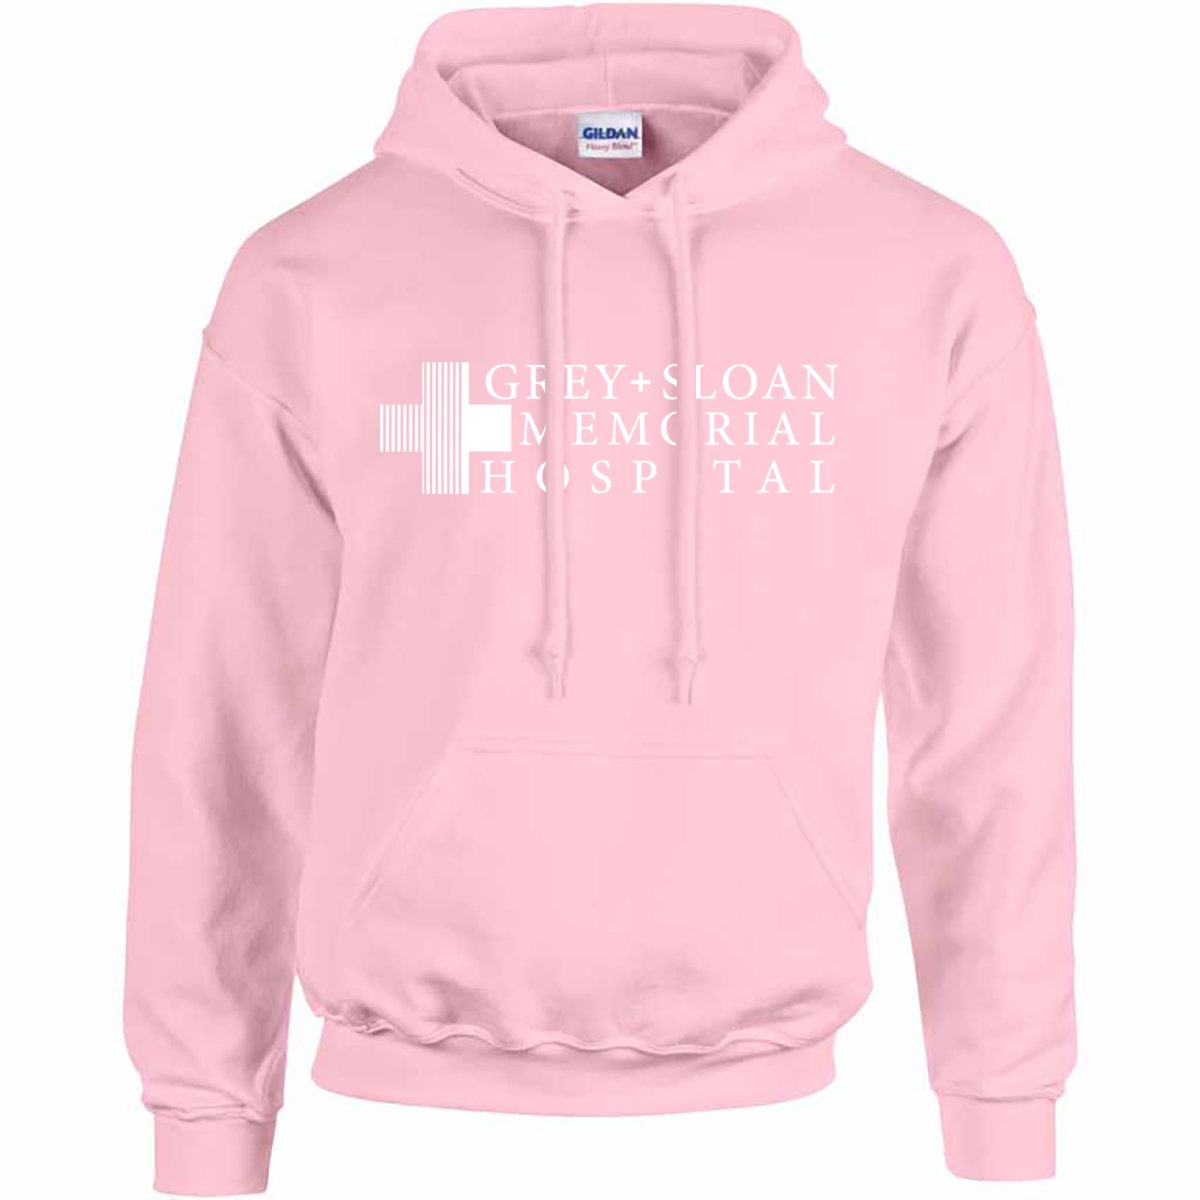 NuffSaid Grey Sloan Memorial Hospital Hooded Sweatshirt Sweater Hoodie Pullover - Premium Quality (Small, Light Pink)